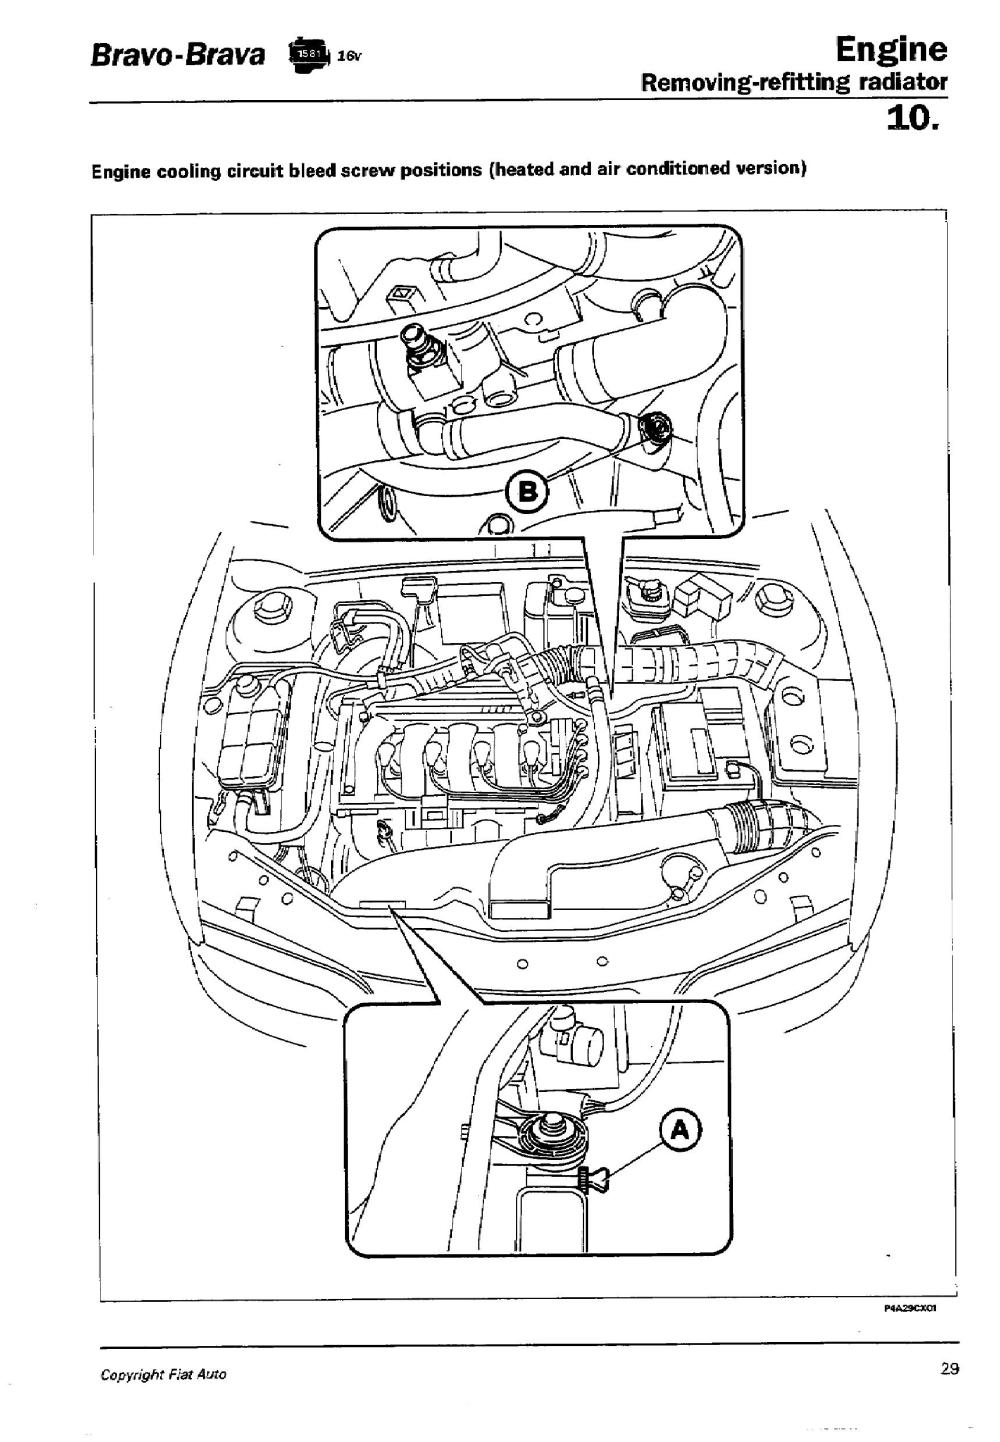 medium resolution of fiat 500 engine diagram home wiring diagram fiat 500 engine diagram